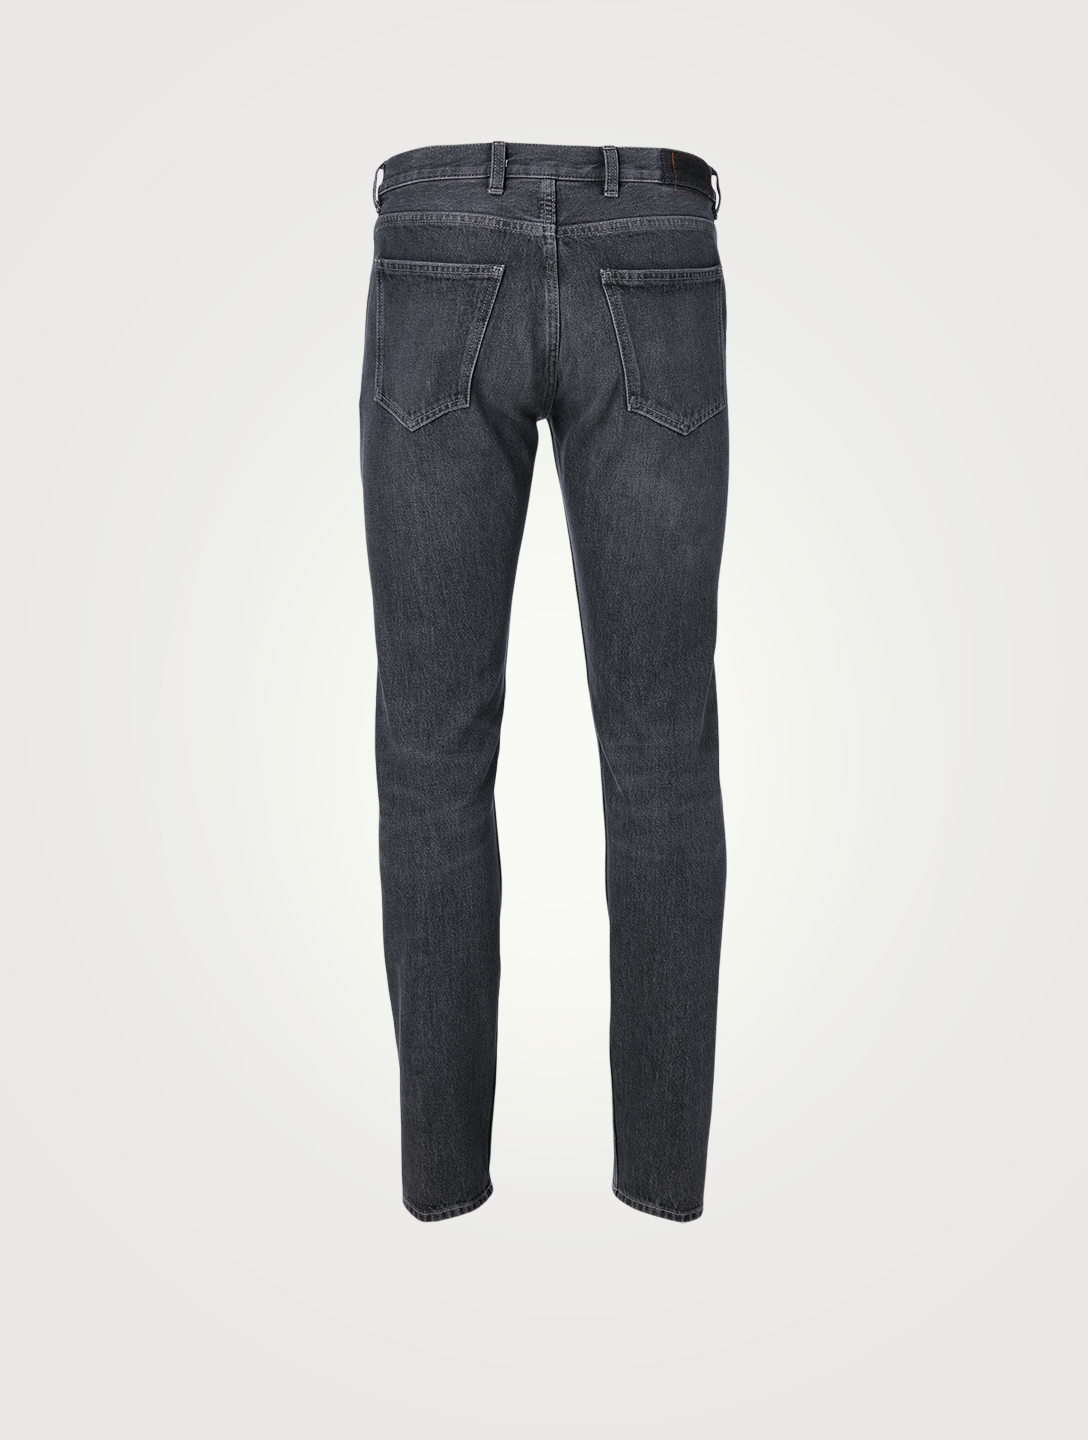 ELEVENTY Cotton Slim-Fit Jeans Men's Grey